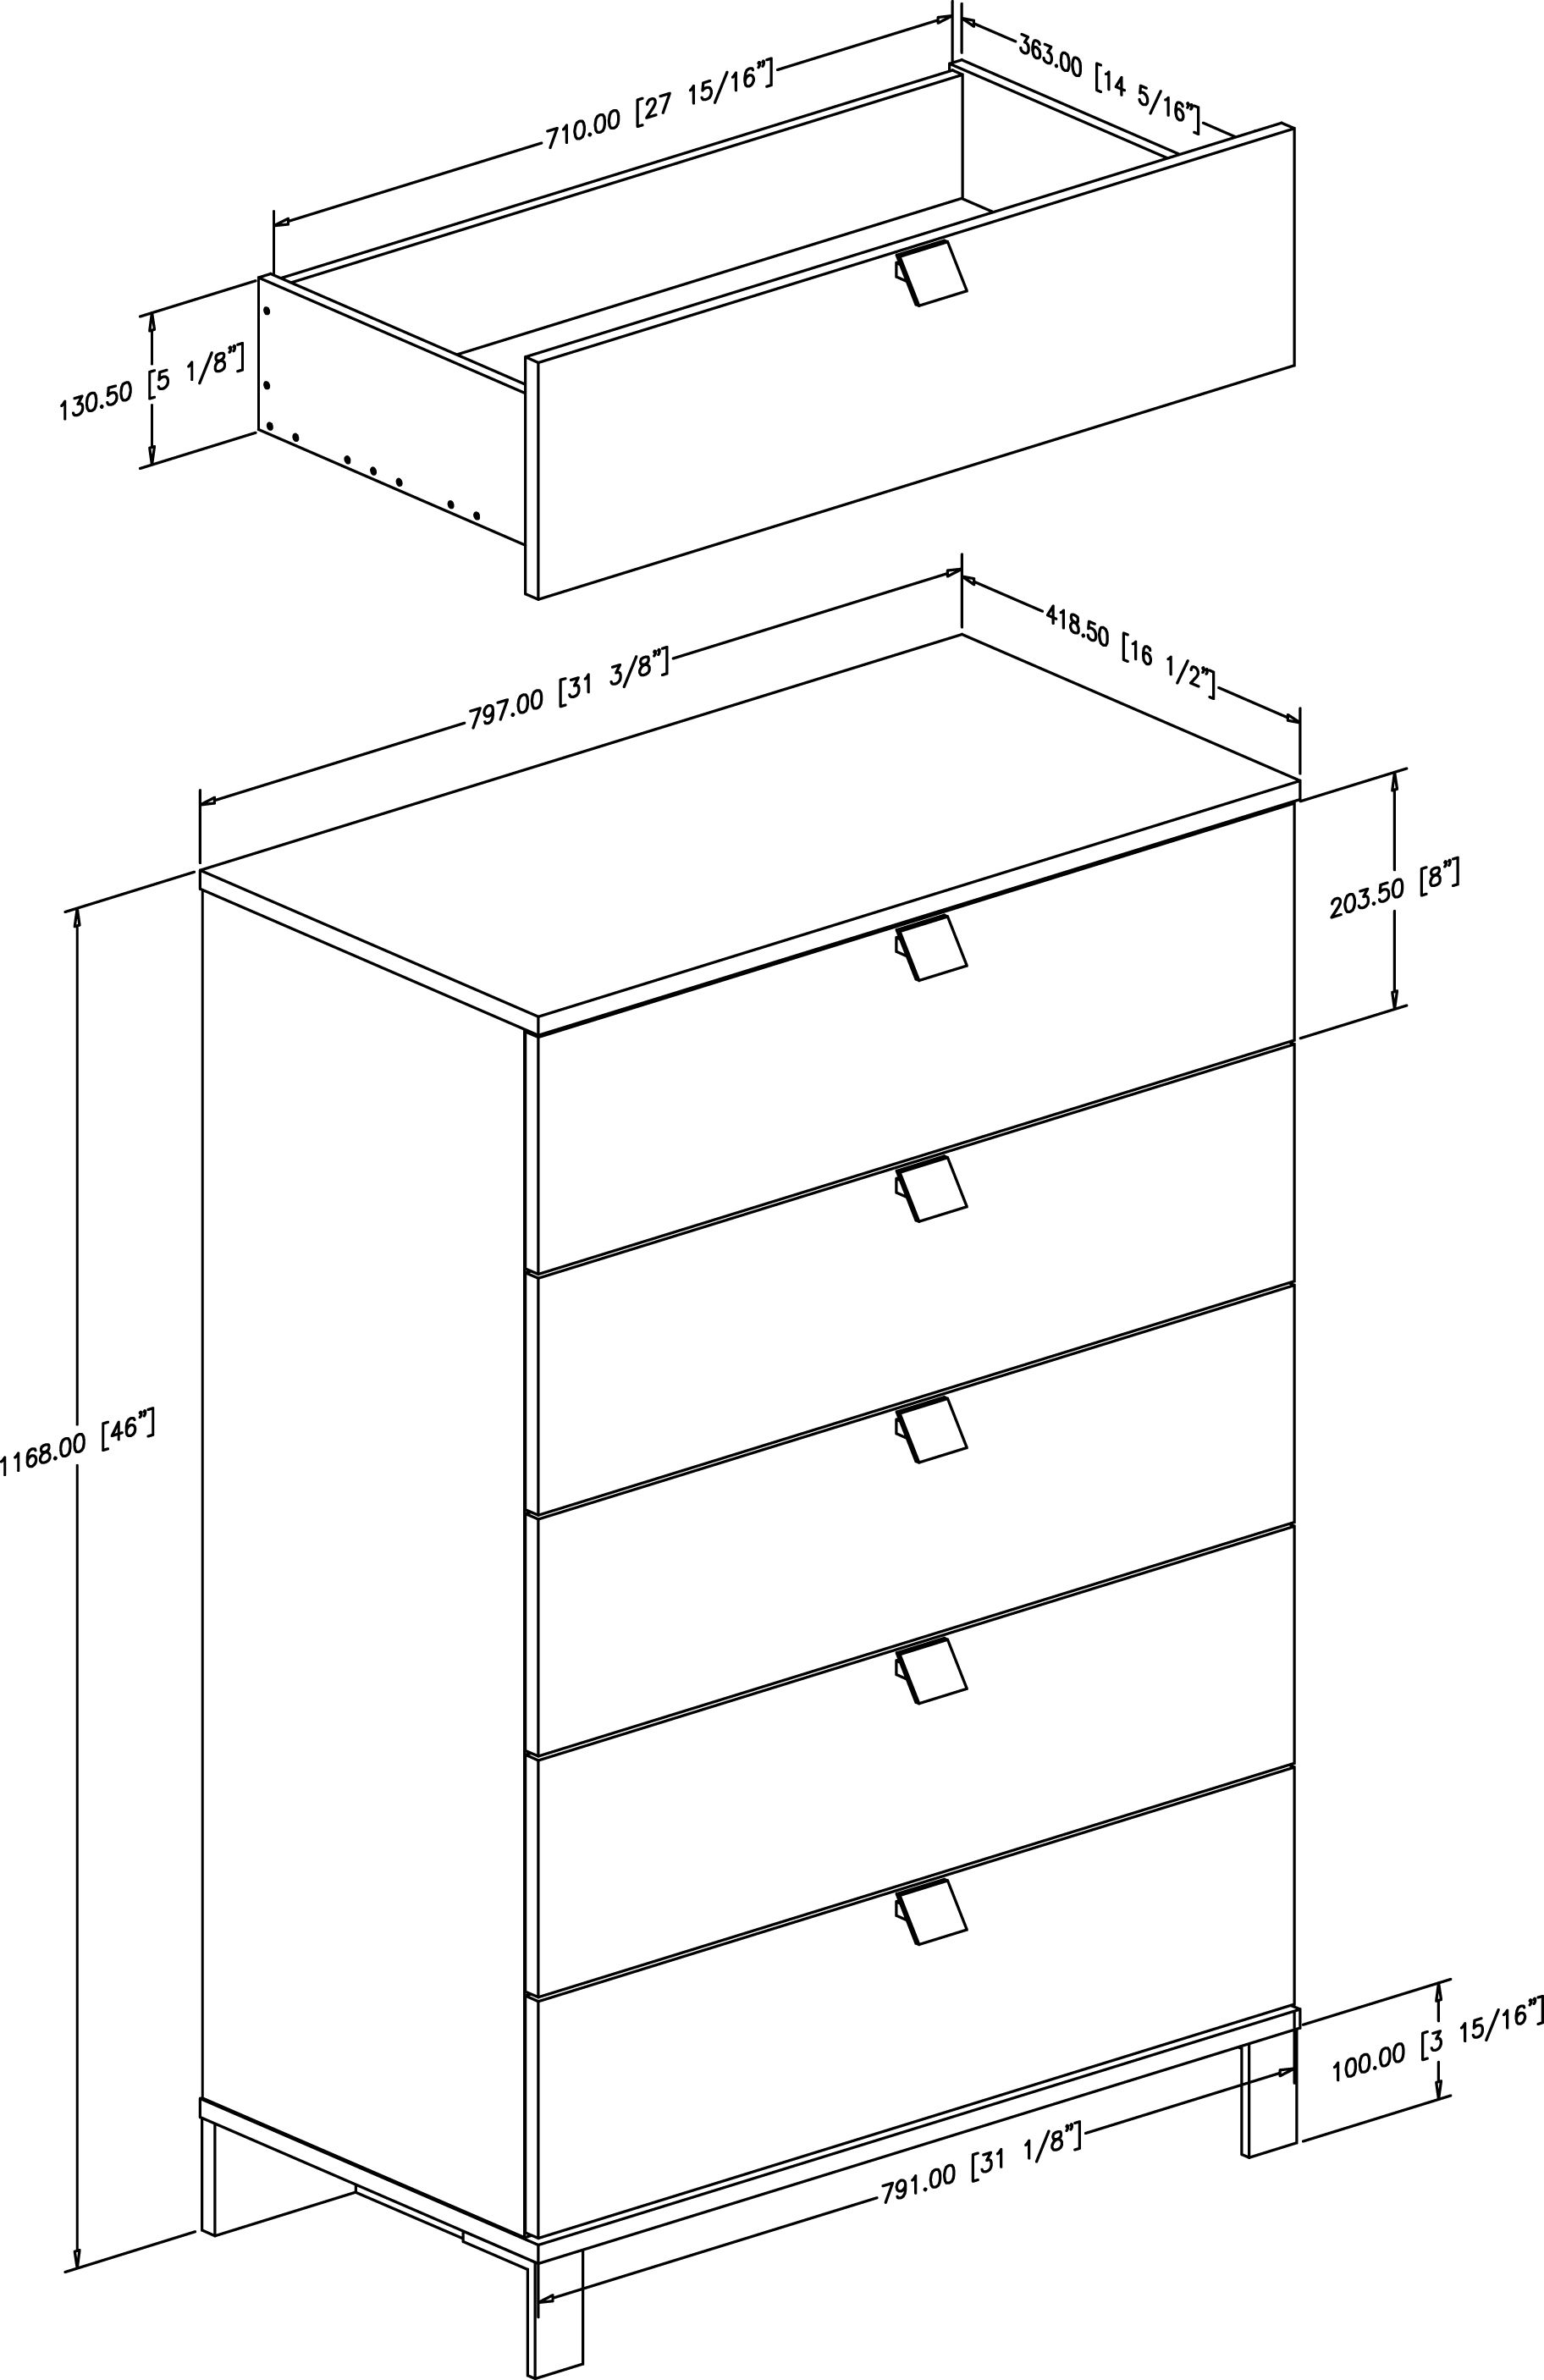 plans to build plans for chest of drawers pdf download plans for Cool Farm Shops plans to build plans for chest of drawers pdf download plans for chest of drawers how to make a dresser free templates are available for the our traditional